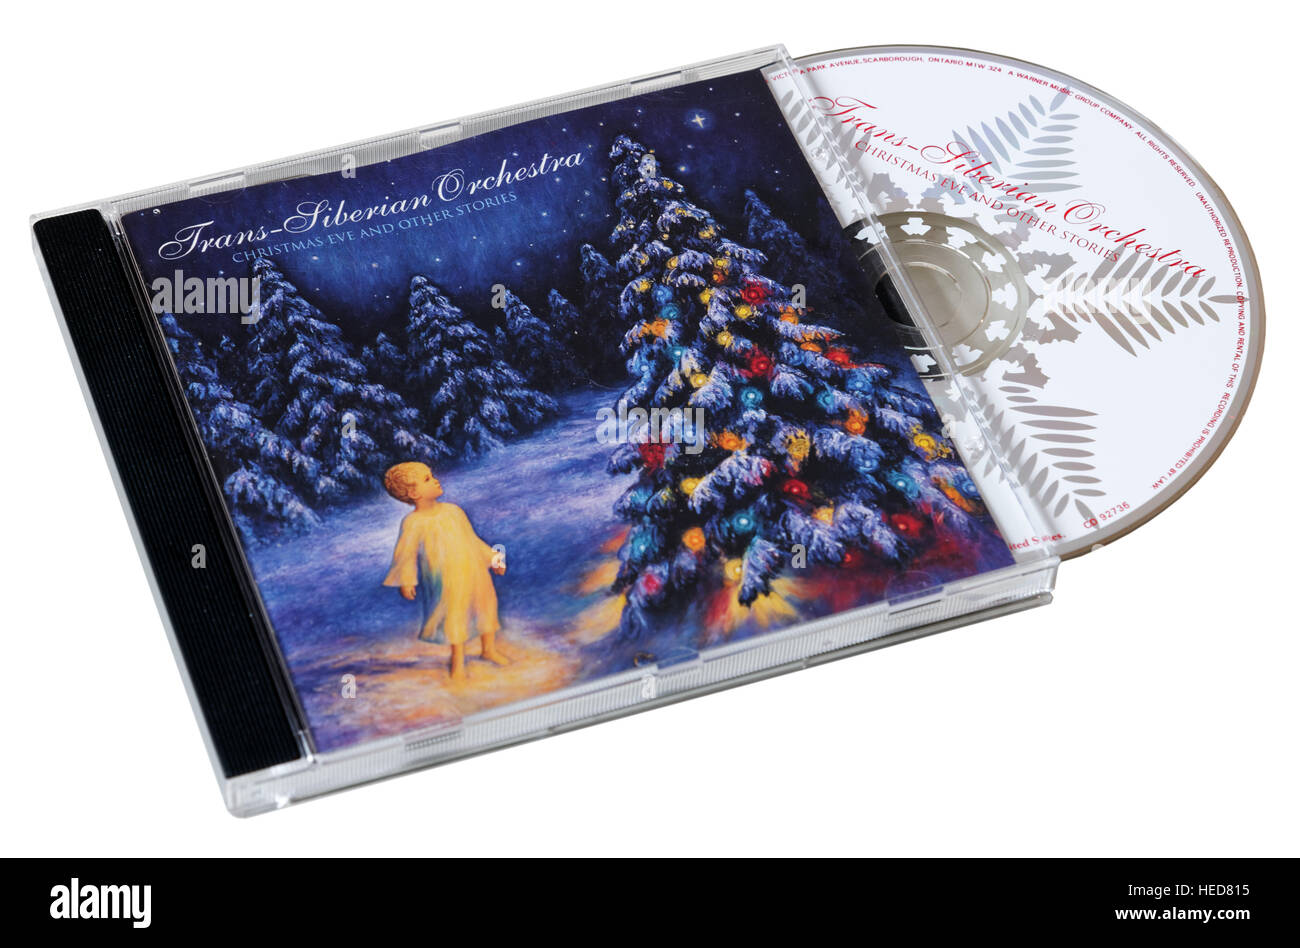 Trans Siberian Orchestra Christmas Eve and Other Stories CD - Stock Image